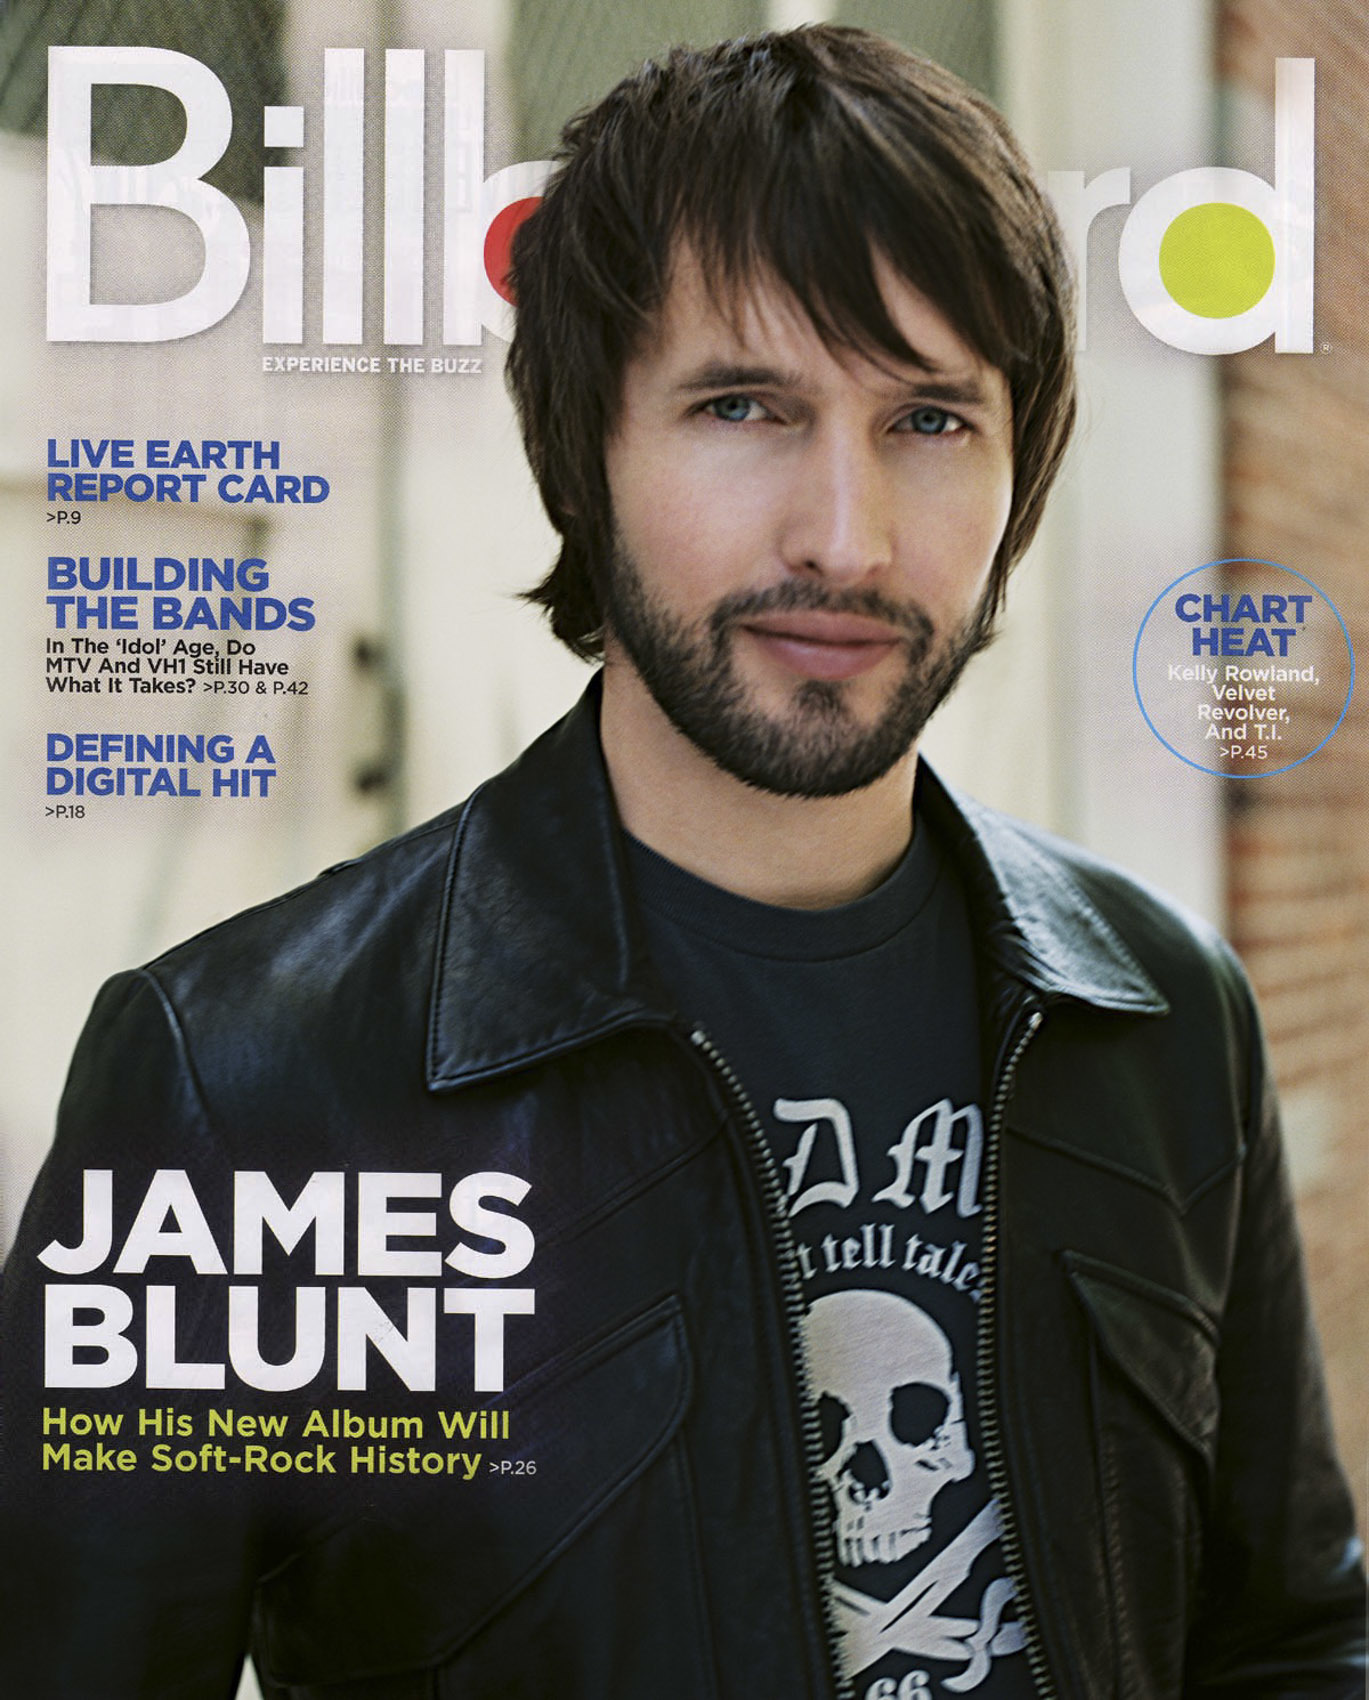 blunt_billboard_cover_retouched